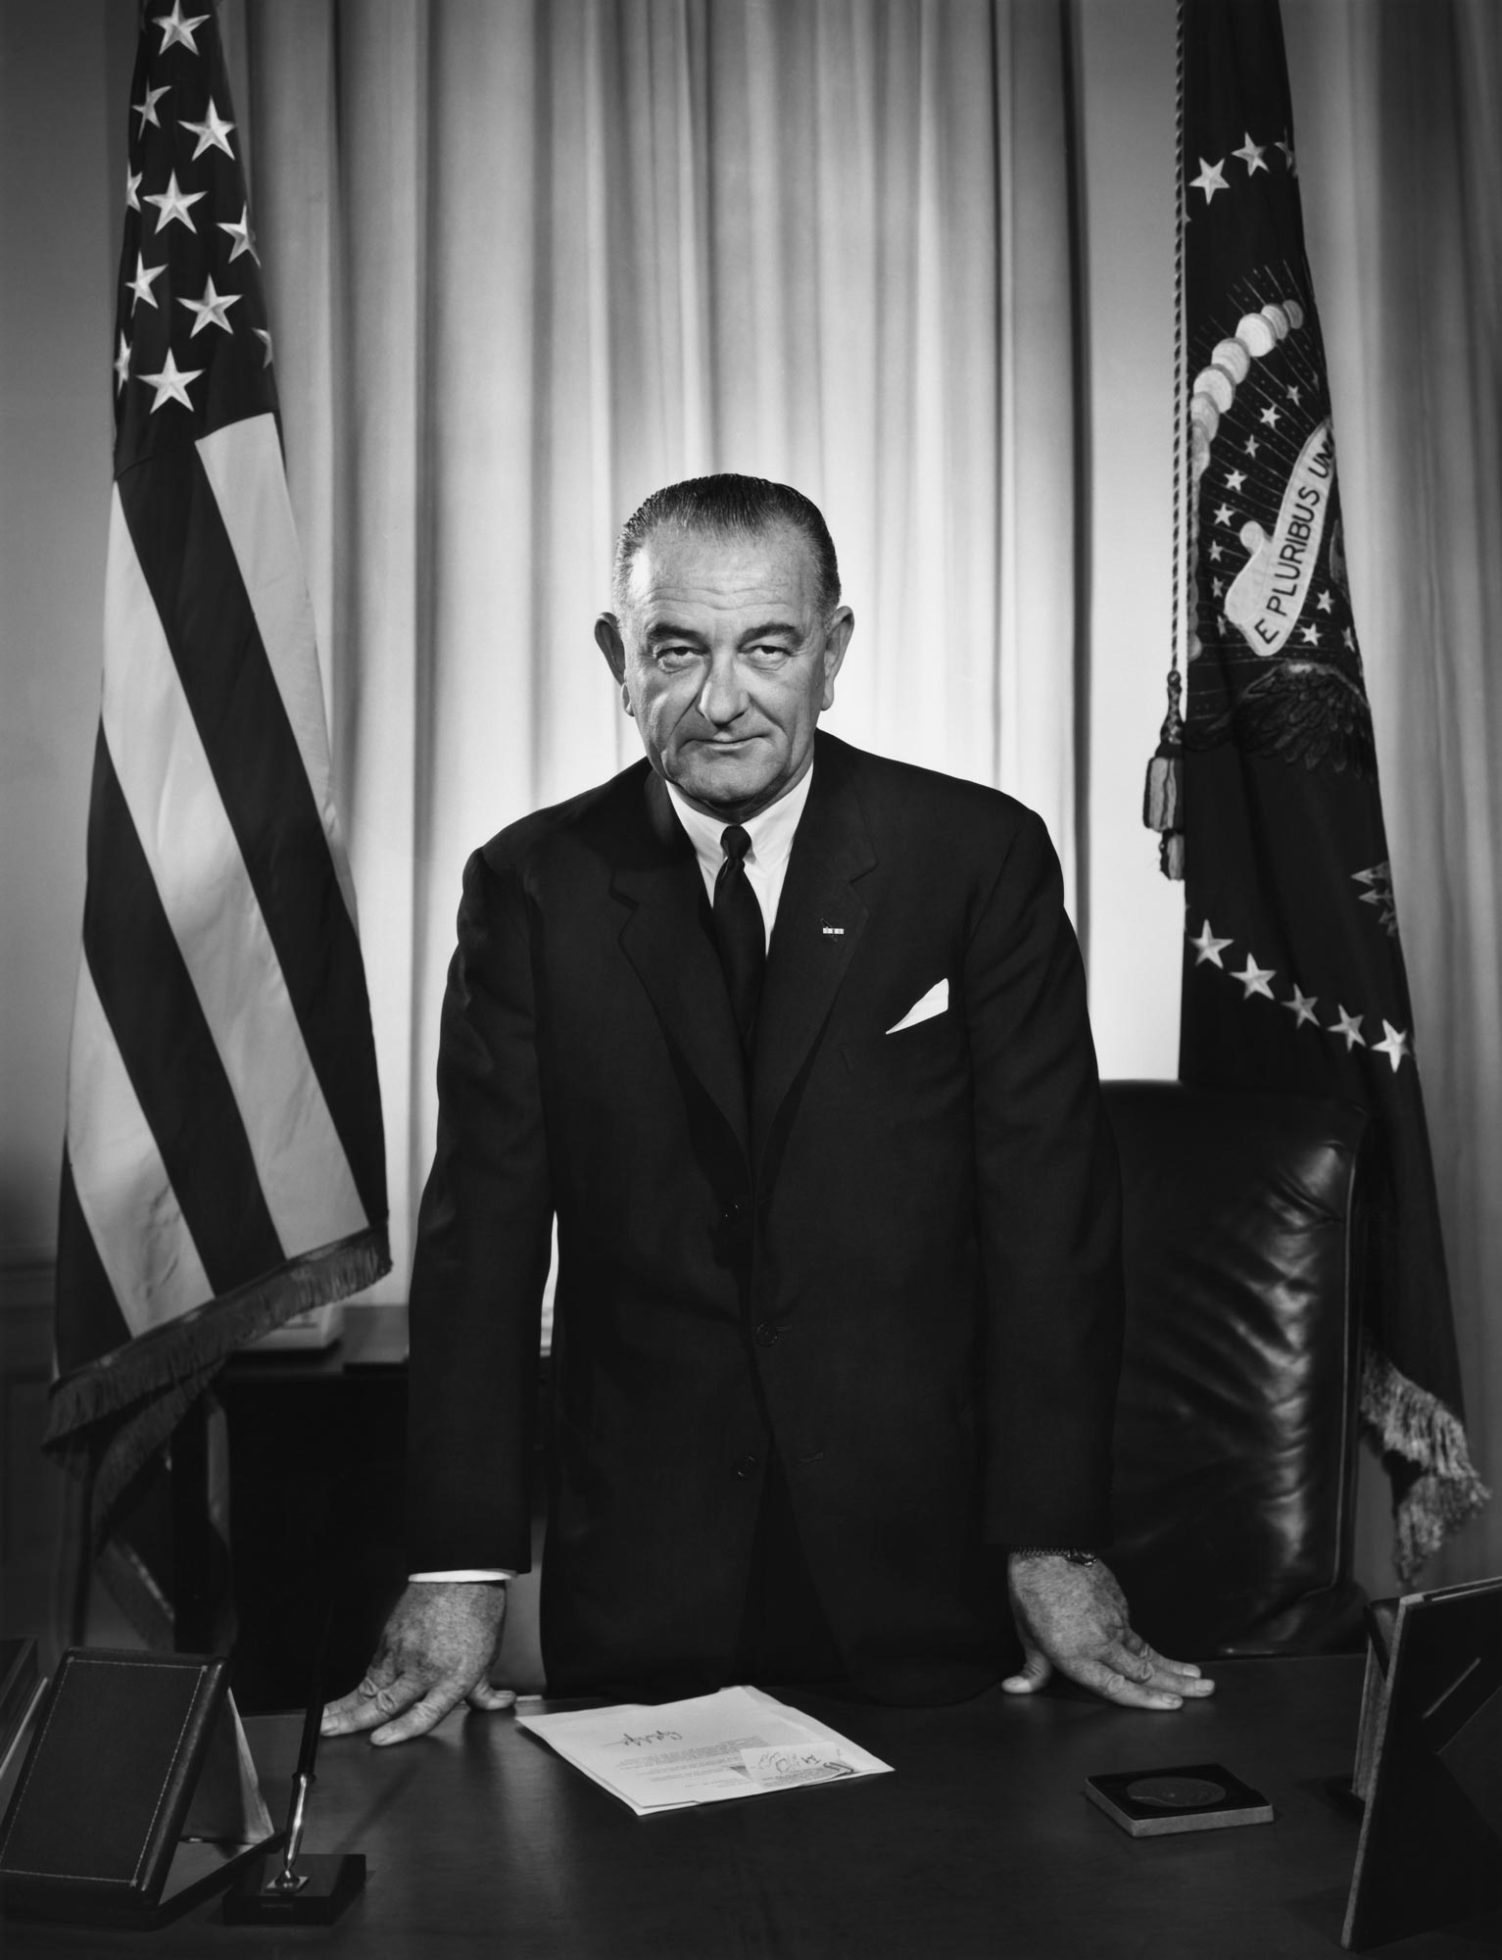 a biography of lyndon baines johnson Johnson, lyndon baines° (1908–1973), 36 th president of the united states as democratic floor leader, he opposed president eisenhower's plan for sanctions against.